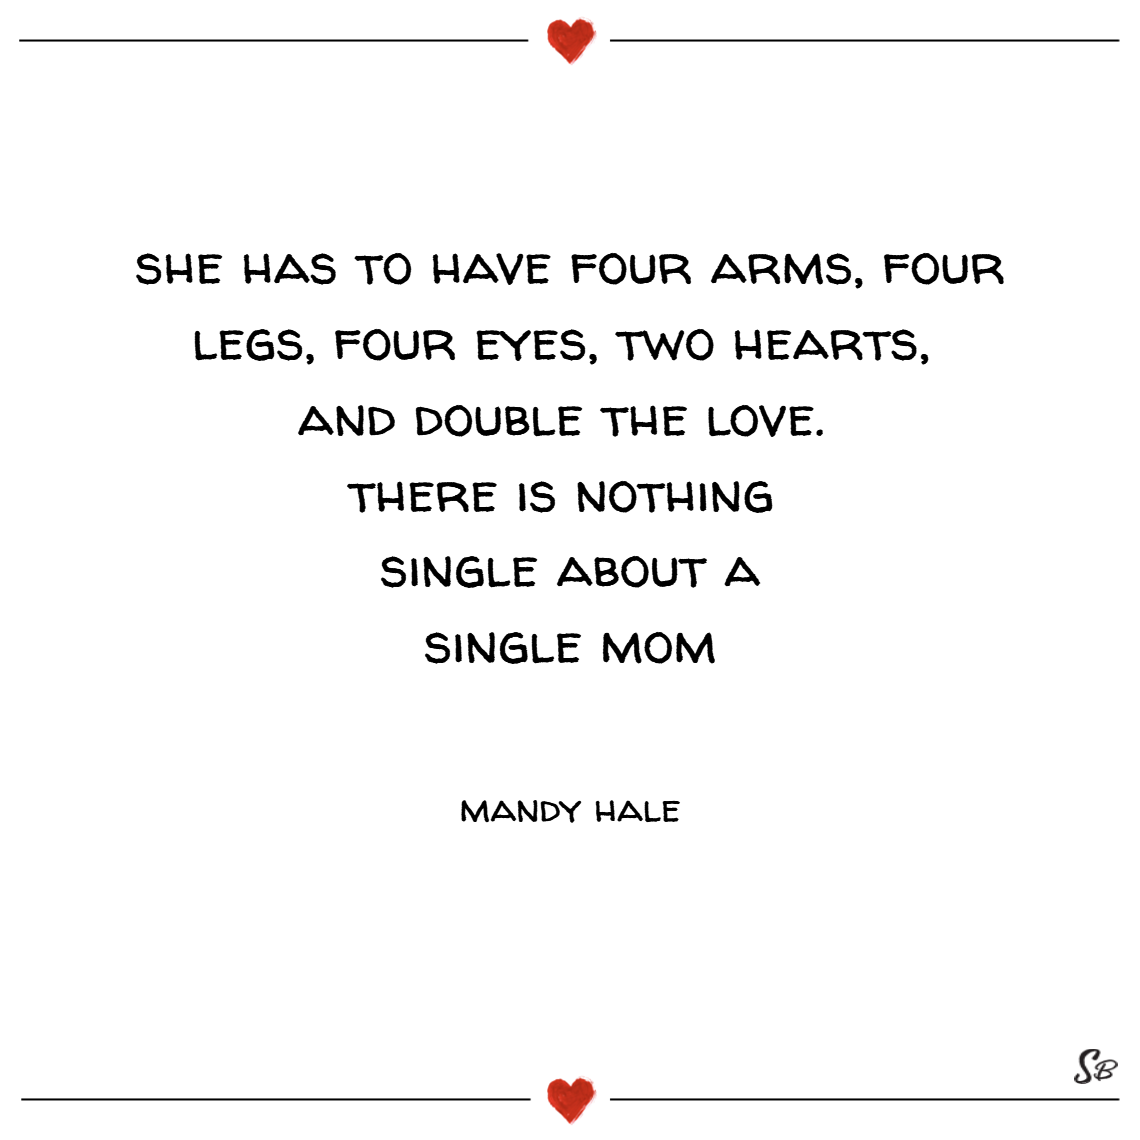 She has to have four arms, four legs, four eyes, two hearts, and double the love. there is nothing single about a single mom. – mandy hale